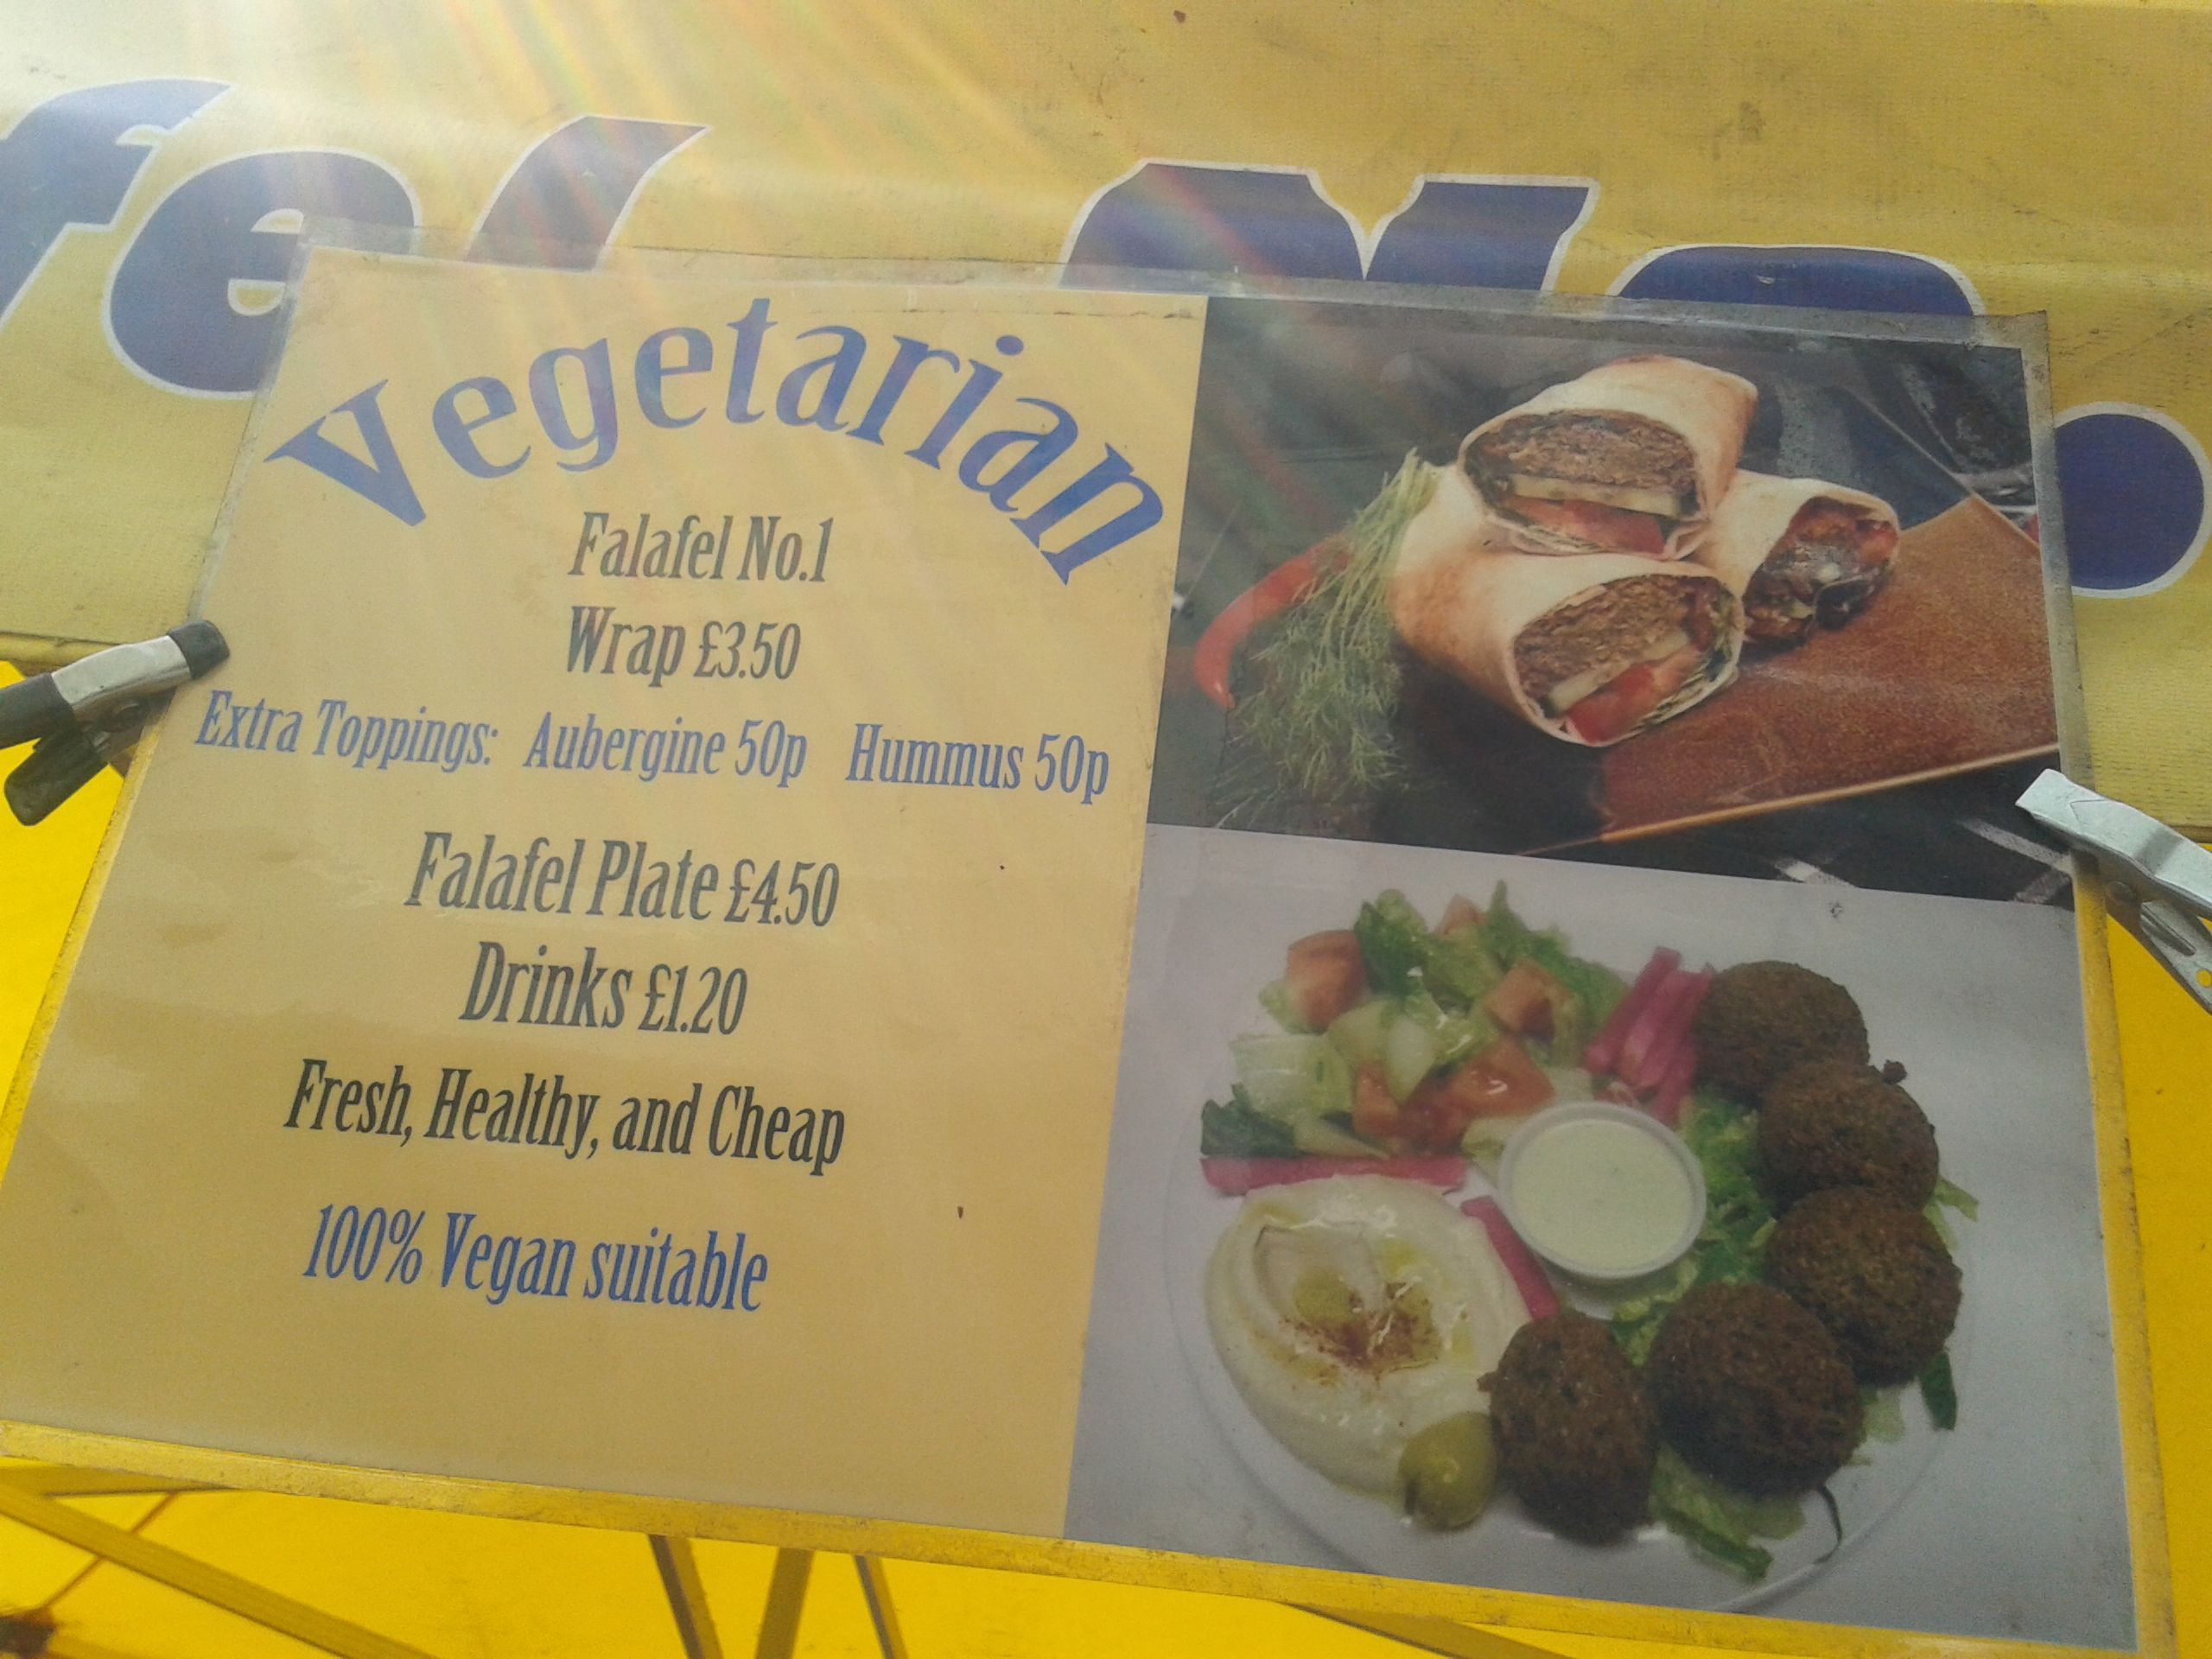 https://i2.wp.com/fatgayvegan.com/wp-content/uploads/2013/08/falafel-sign.jpg?fit=2560%2C1920